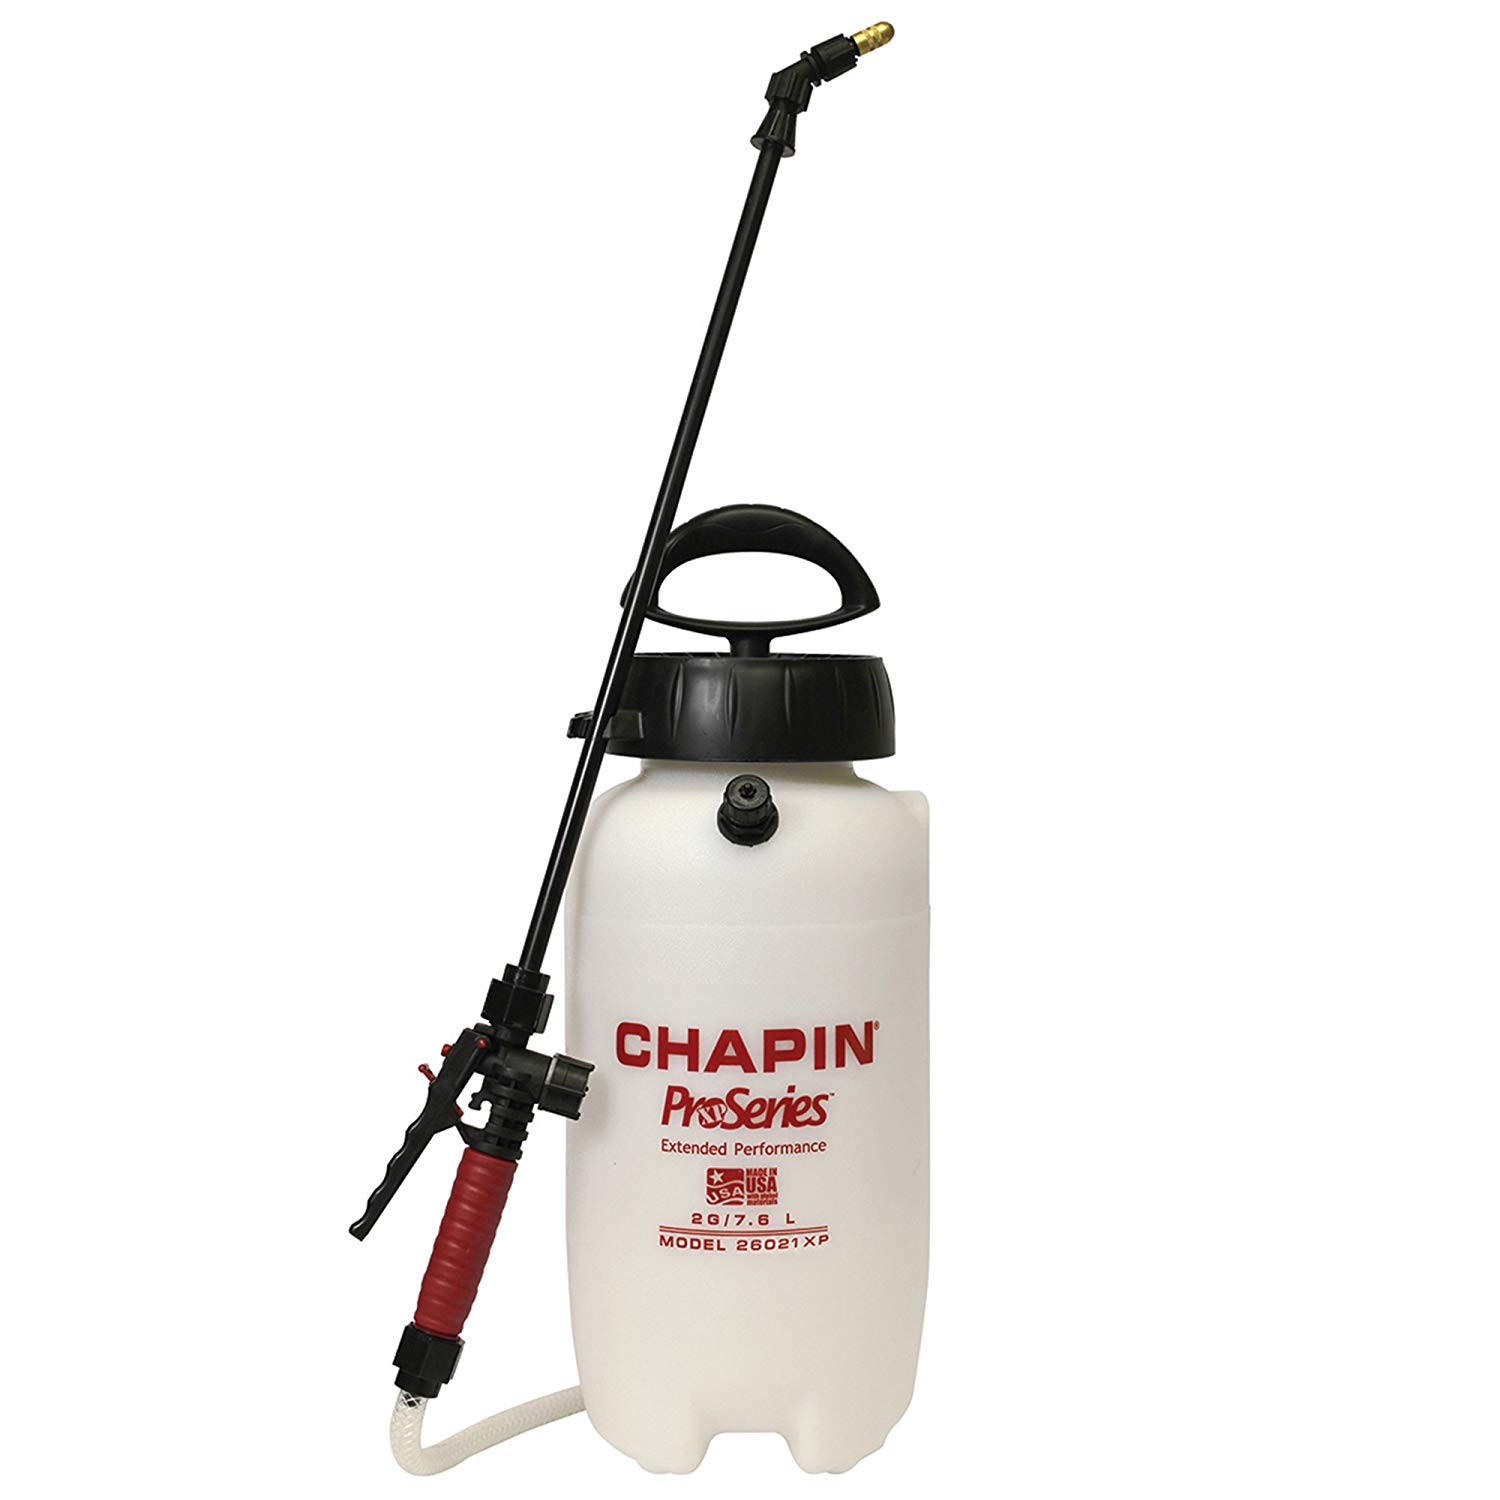 Chapin International 26021XP Compression Sprayer